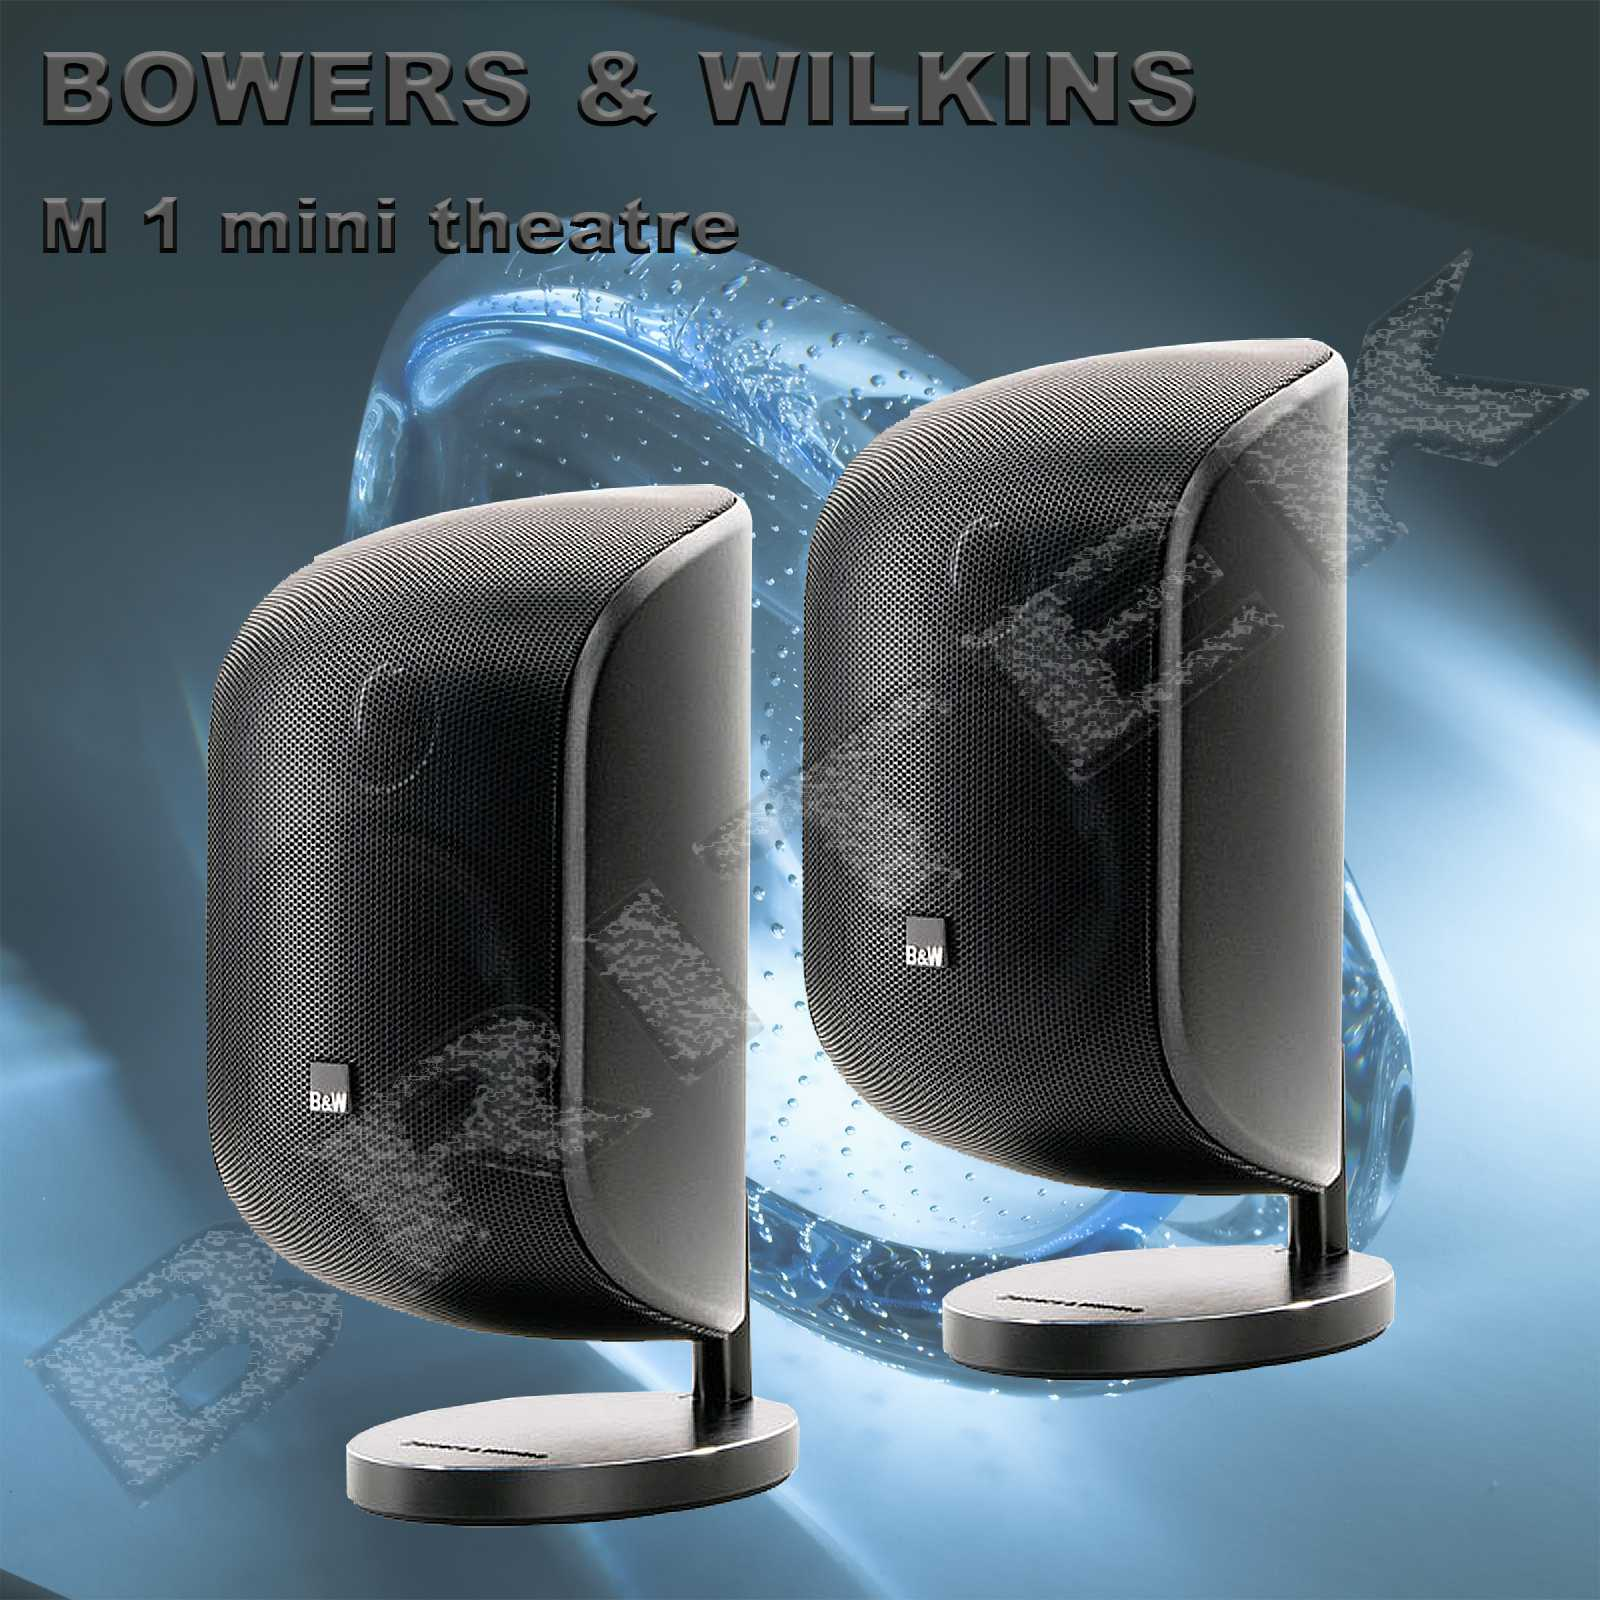 Bowers & Wilkins M1 new